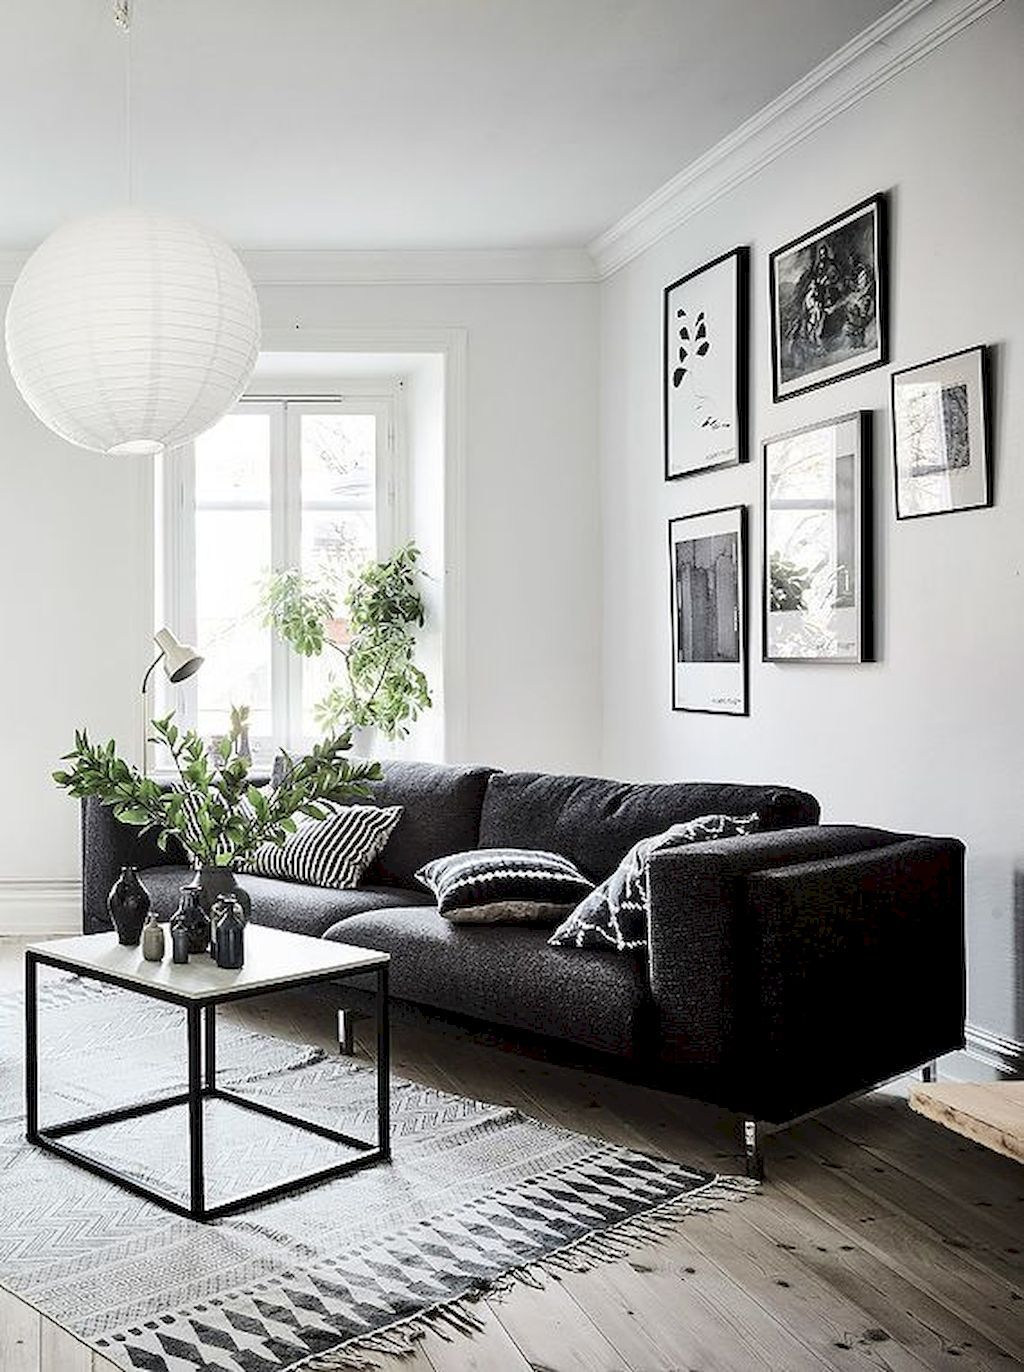 Dark Living Room Ideas: 32 ELEGANT LIVING ROOM WITH BLACK AND WHITE COLOR